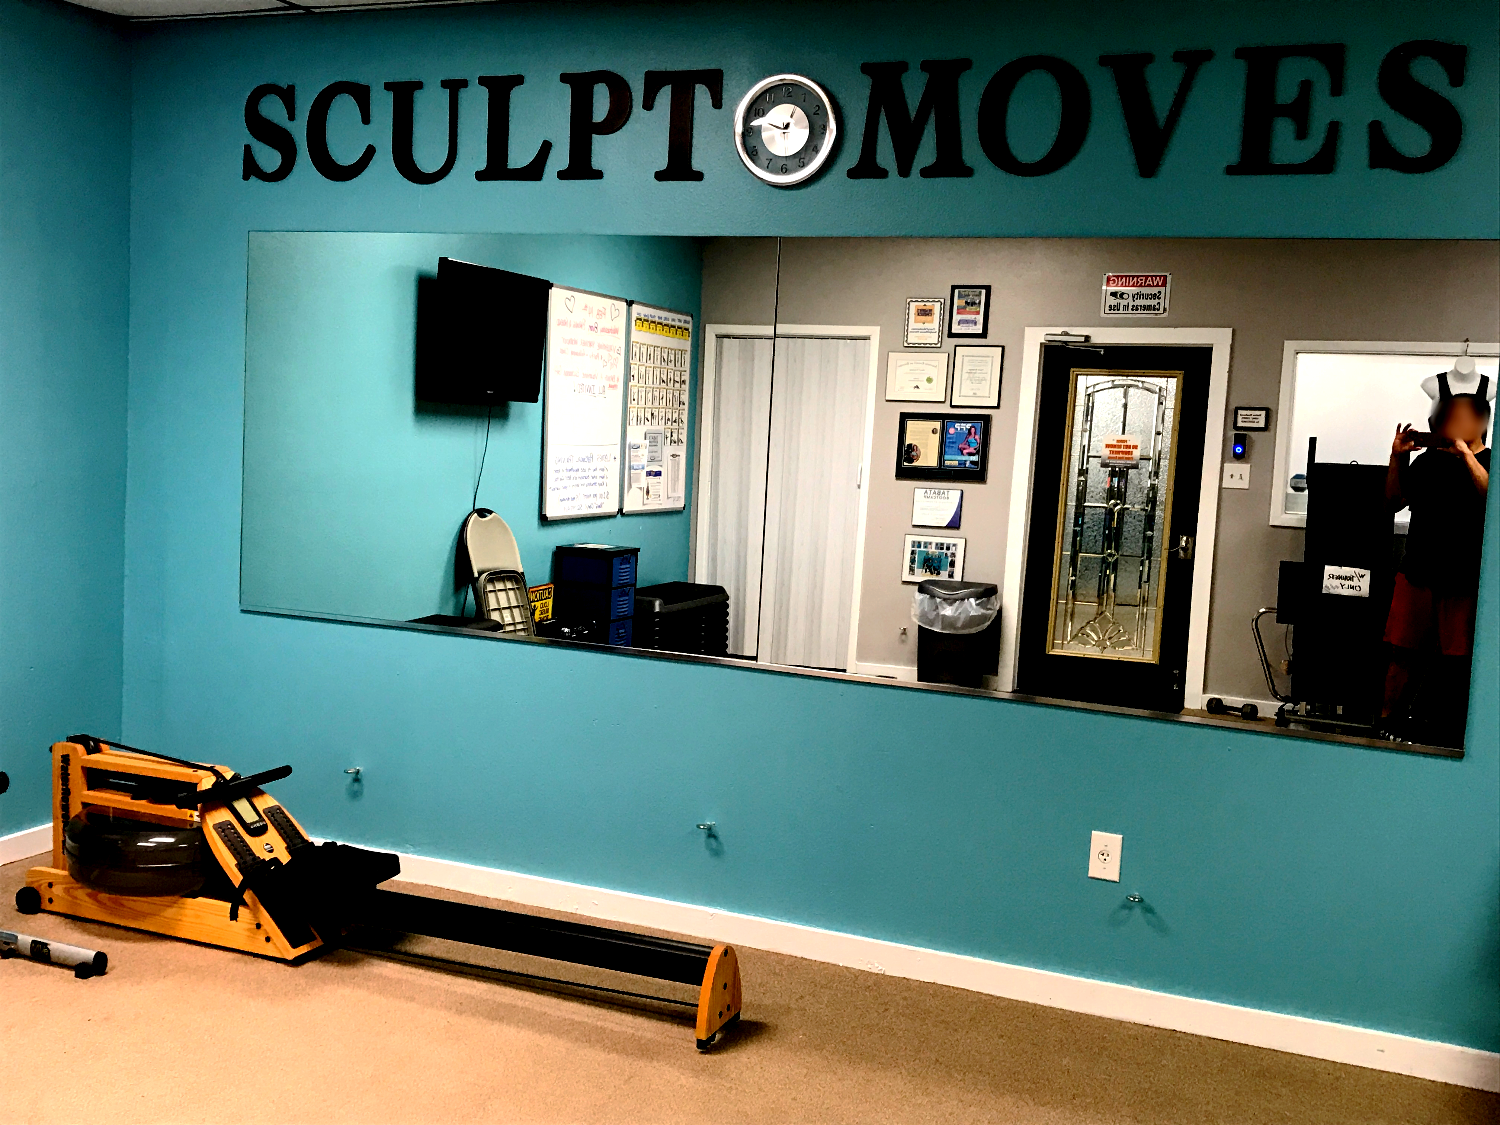 SCULPT MOVES